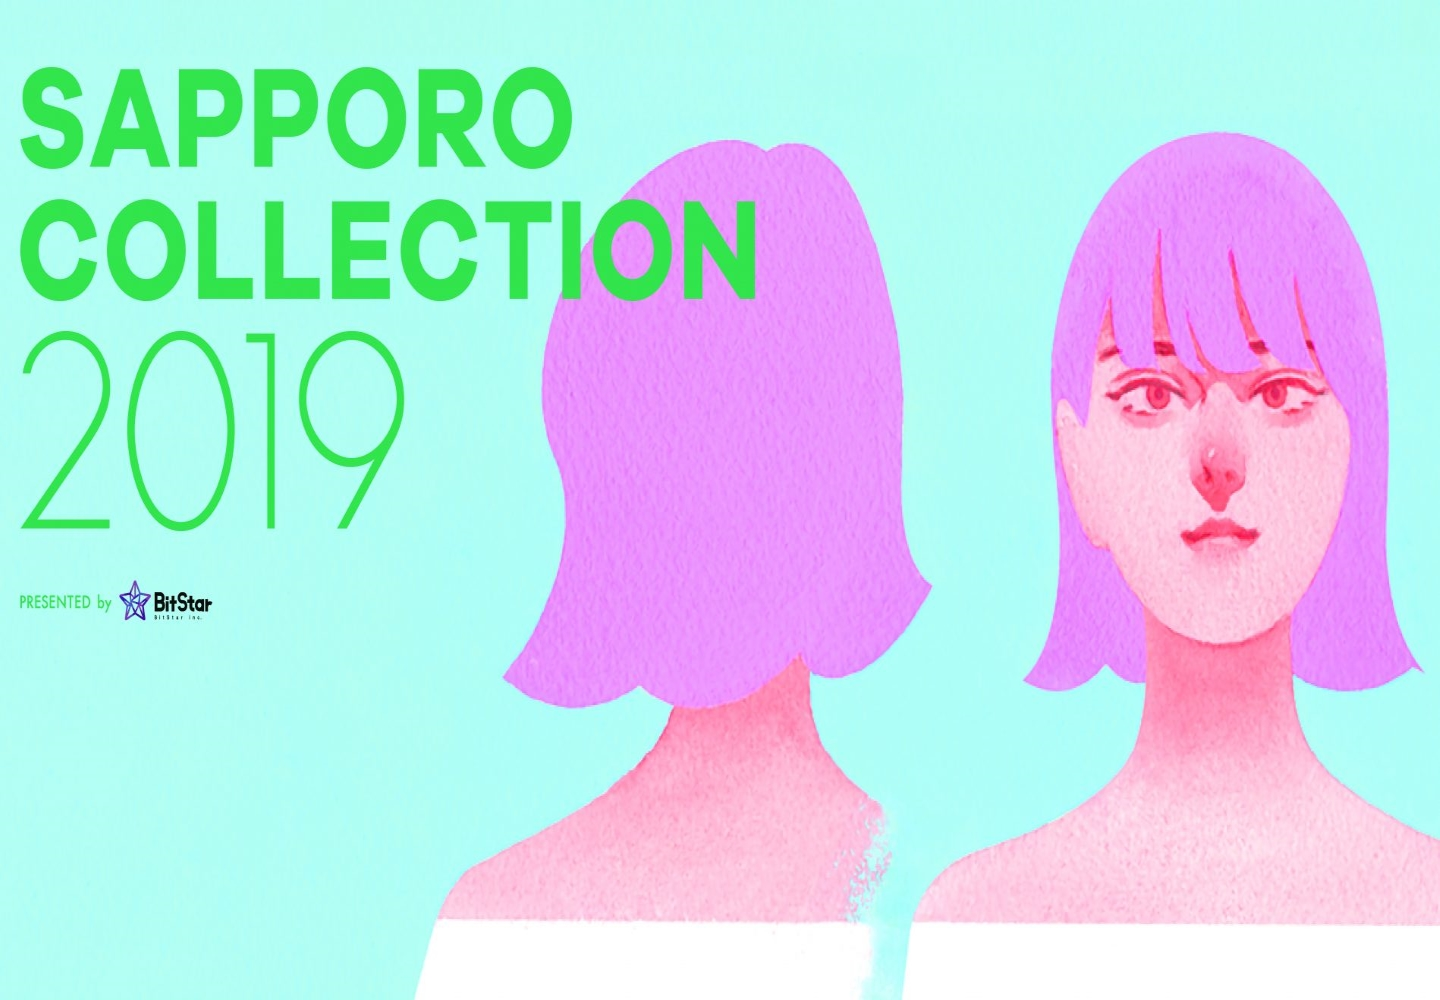 SAPPORO COLLECTION 2019